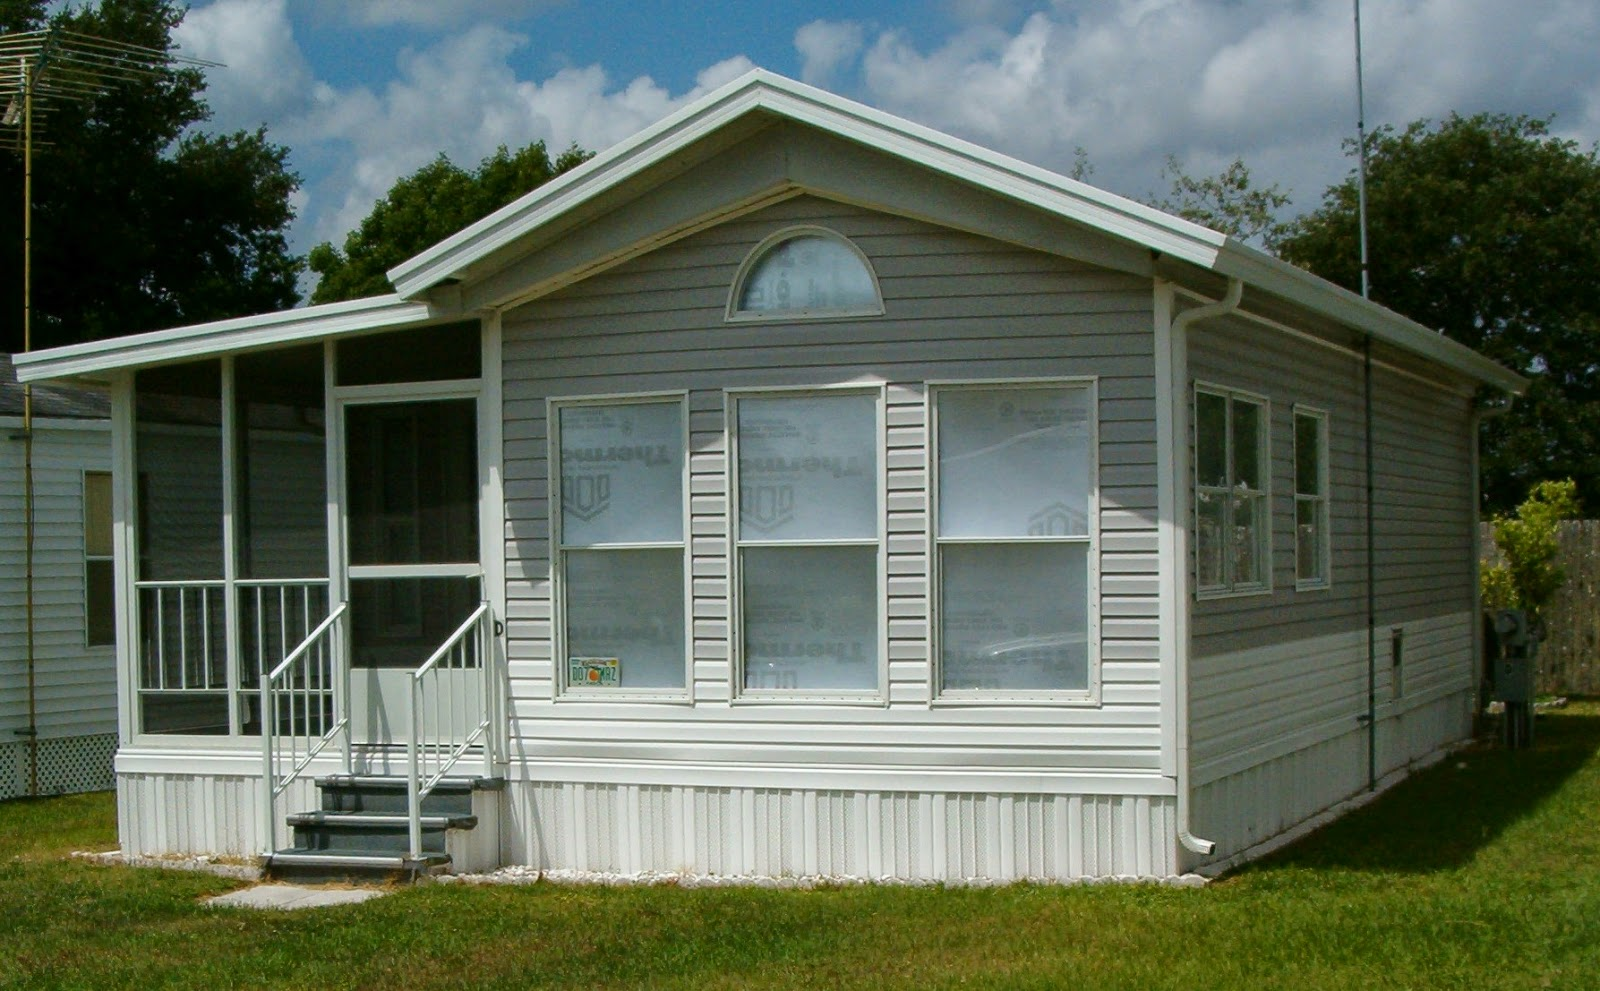 Double Wide Mobile Homes for Rent